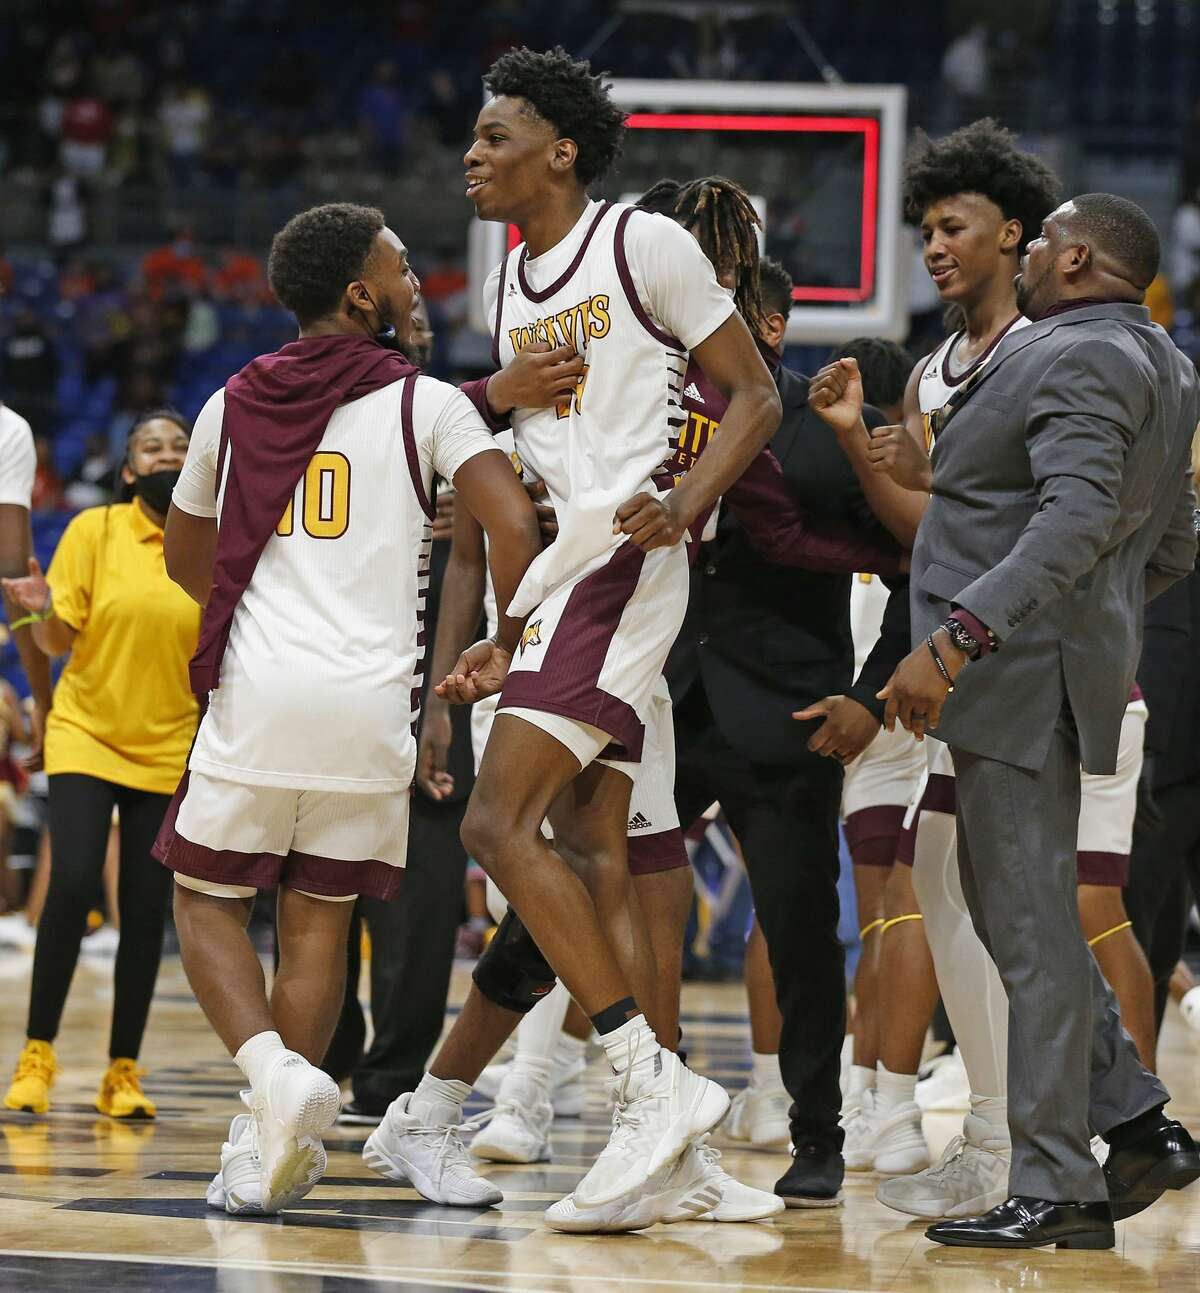 Beaumont United Terrance Arceneaux #23celebrates with teammates after hitting winning three in OT. Beaumont United vs. Dallas Kimball in Class 5A state championship at the Alamodome on Friday, 2021